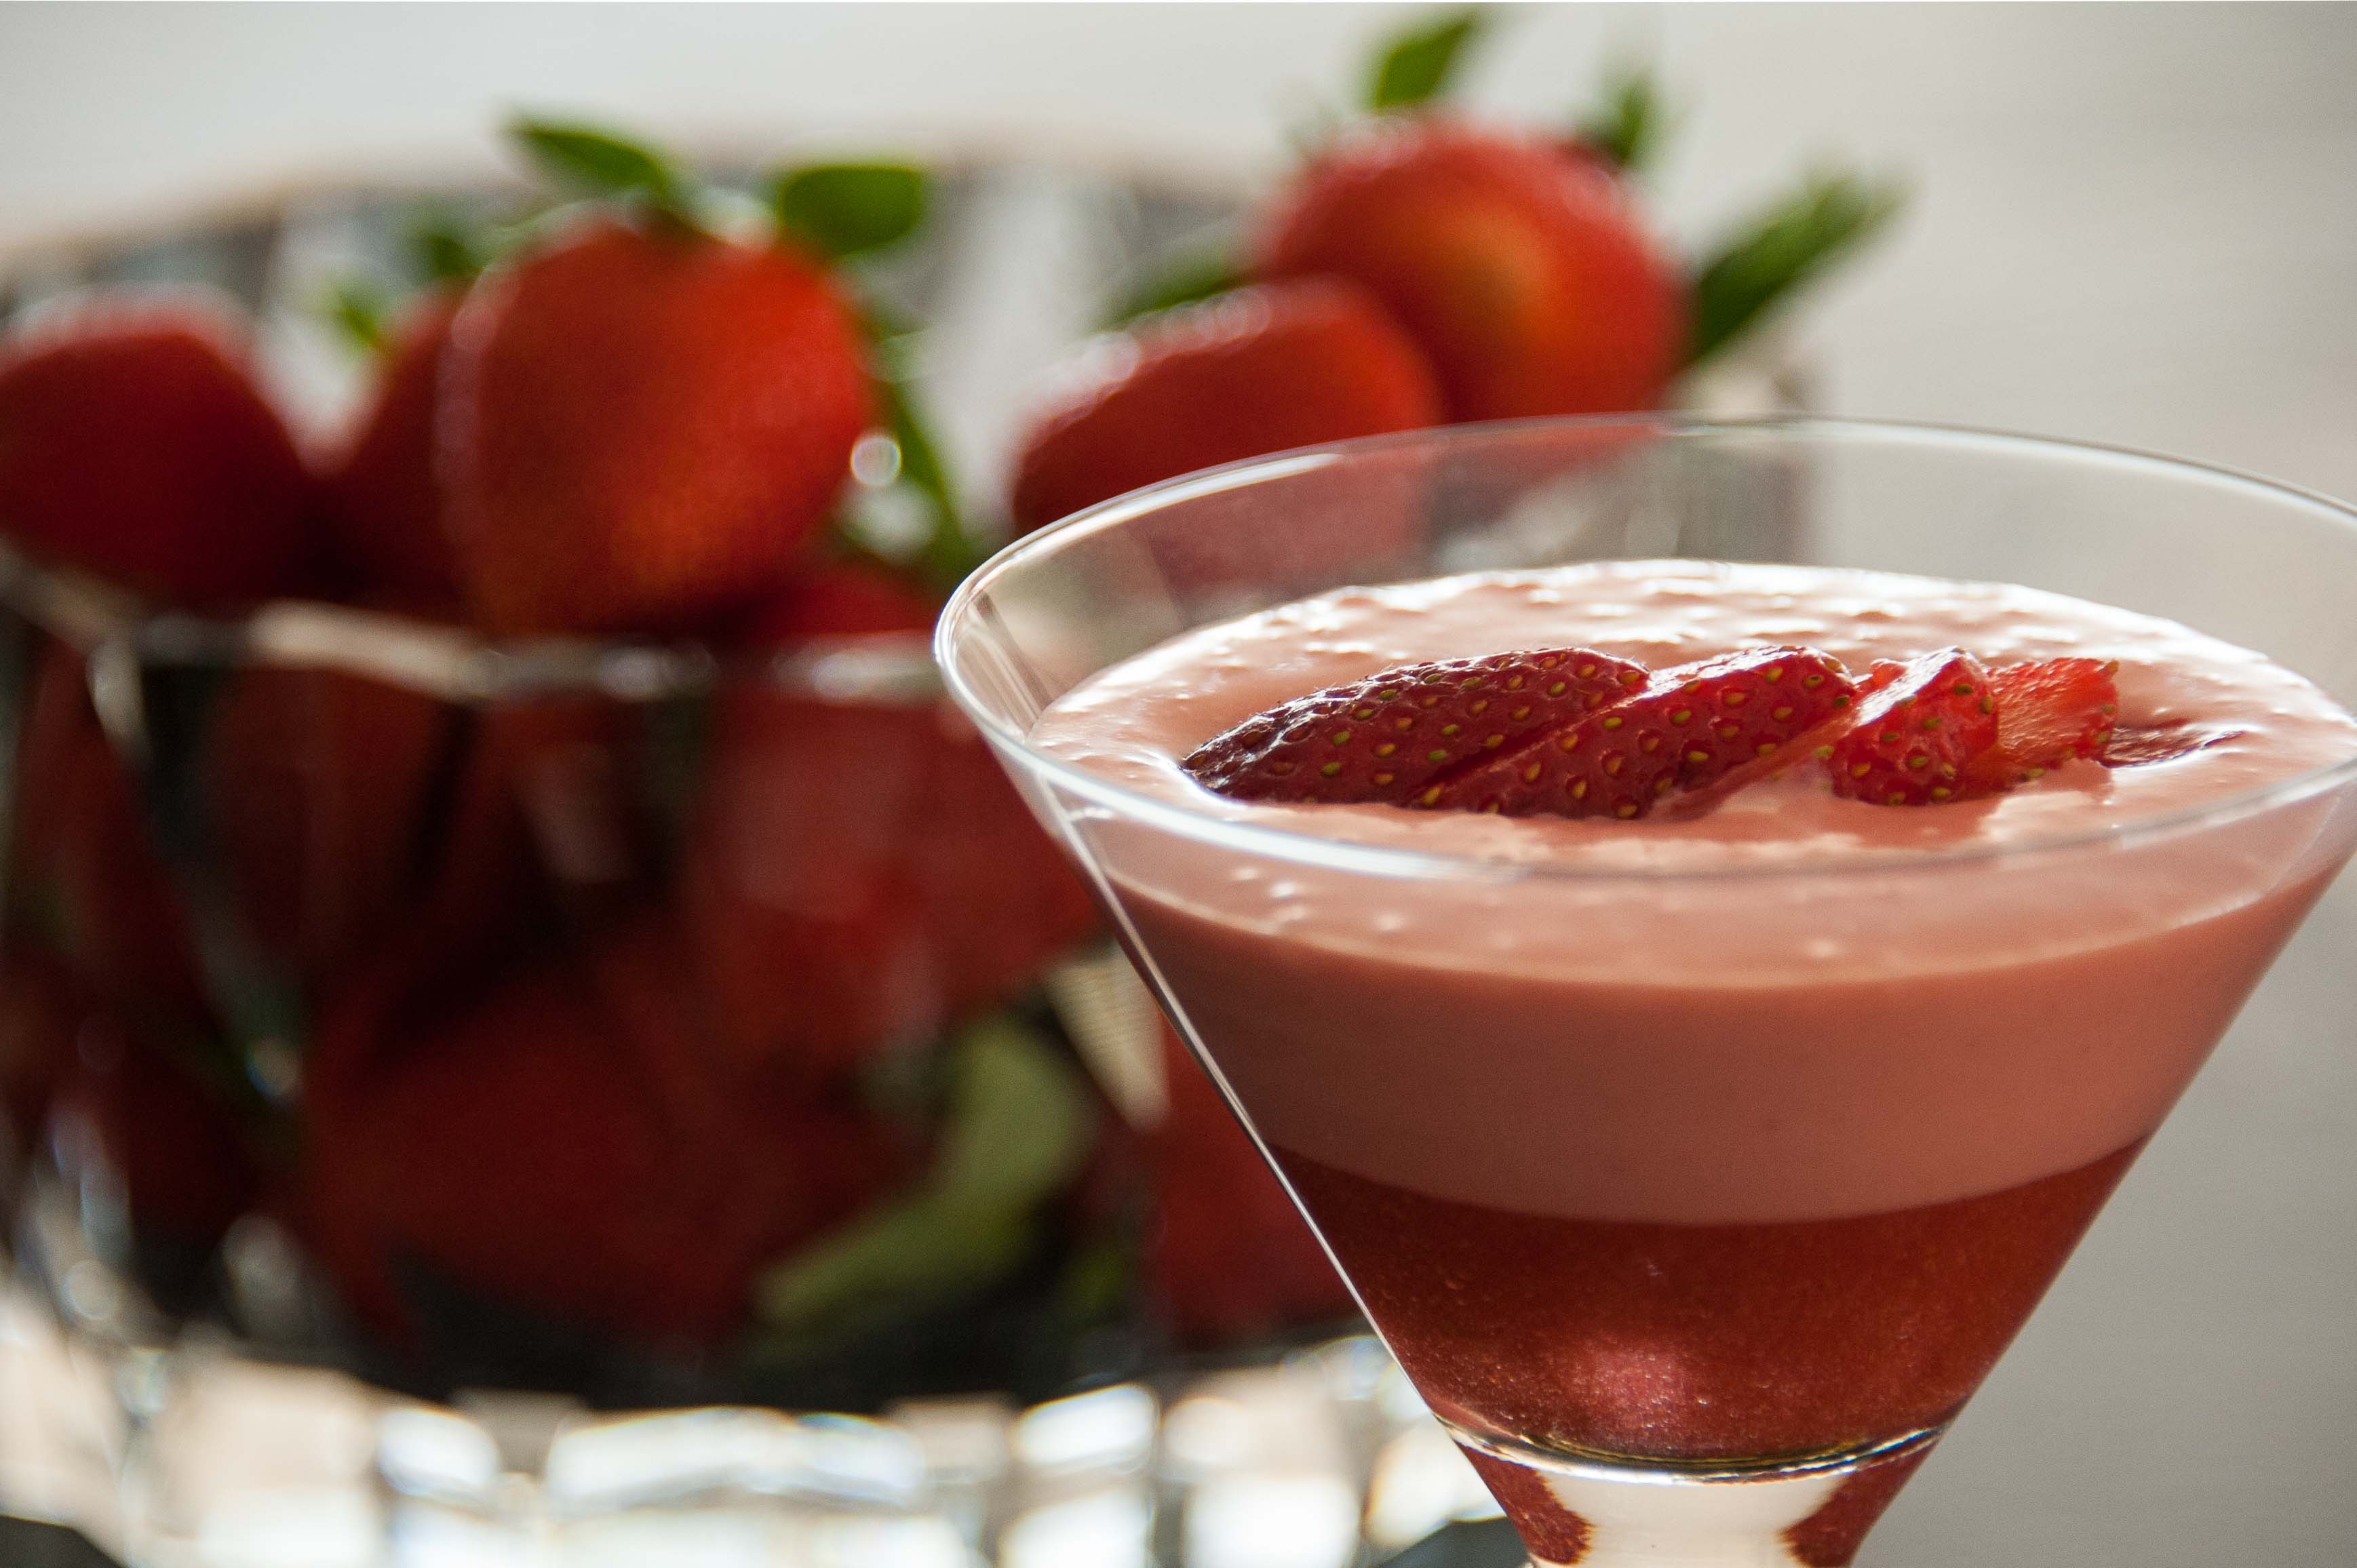 Cool Creamy Strawberry Dessert